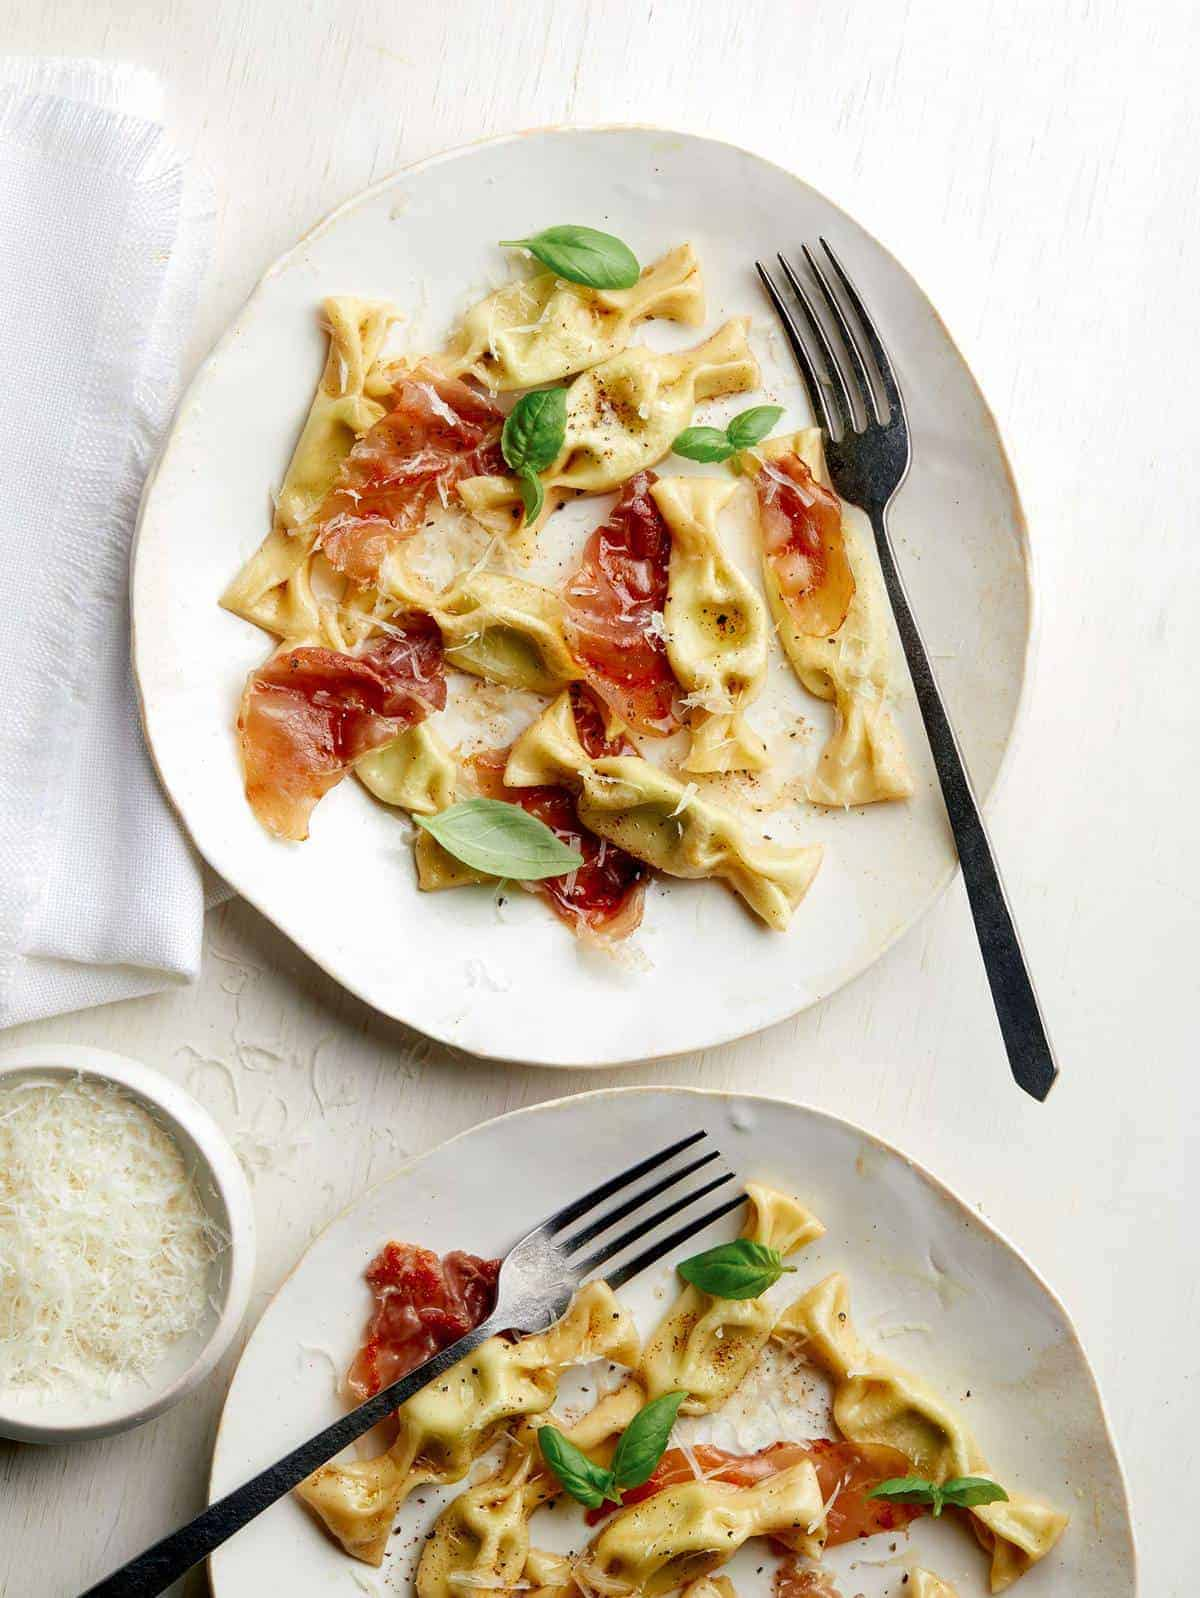 Plates of sweet pea caramelle with prosciutto and forks.